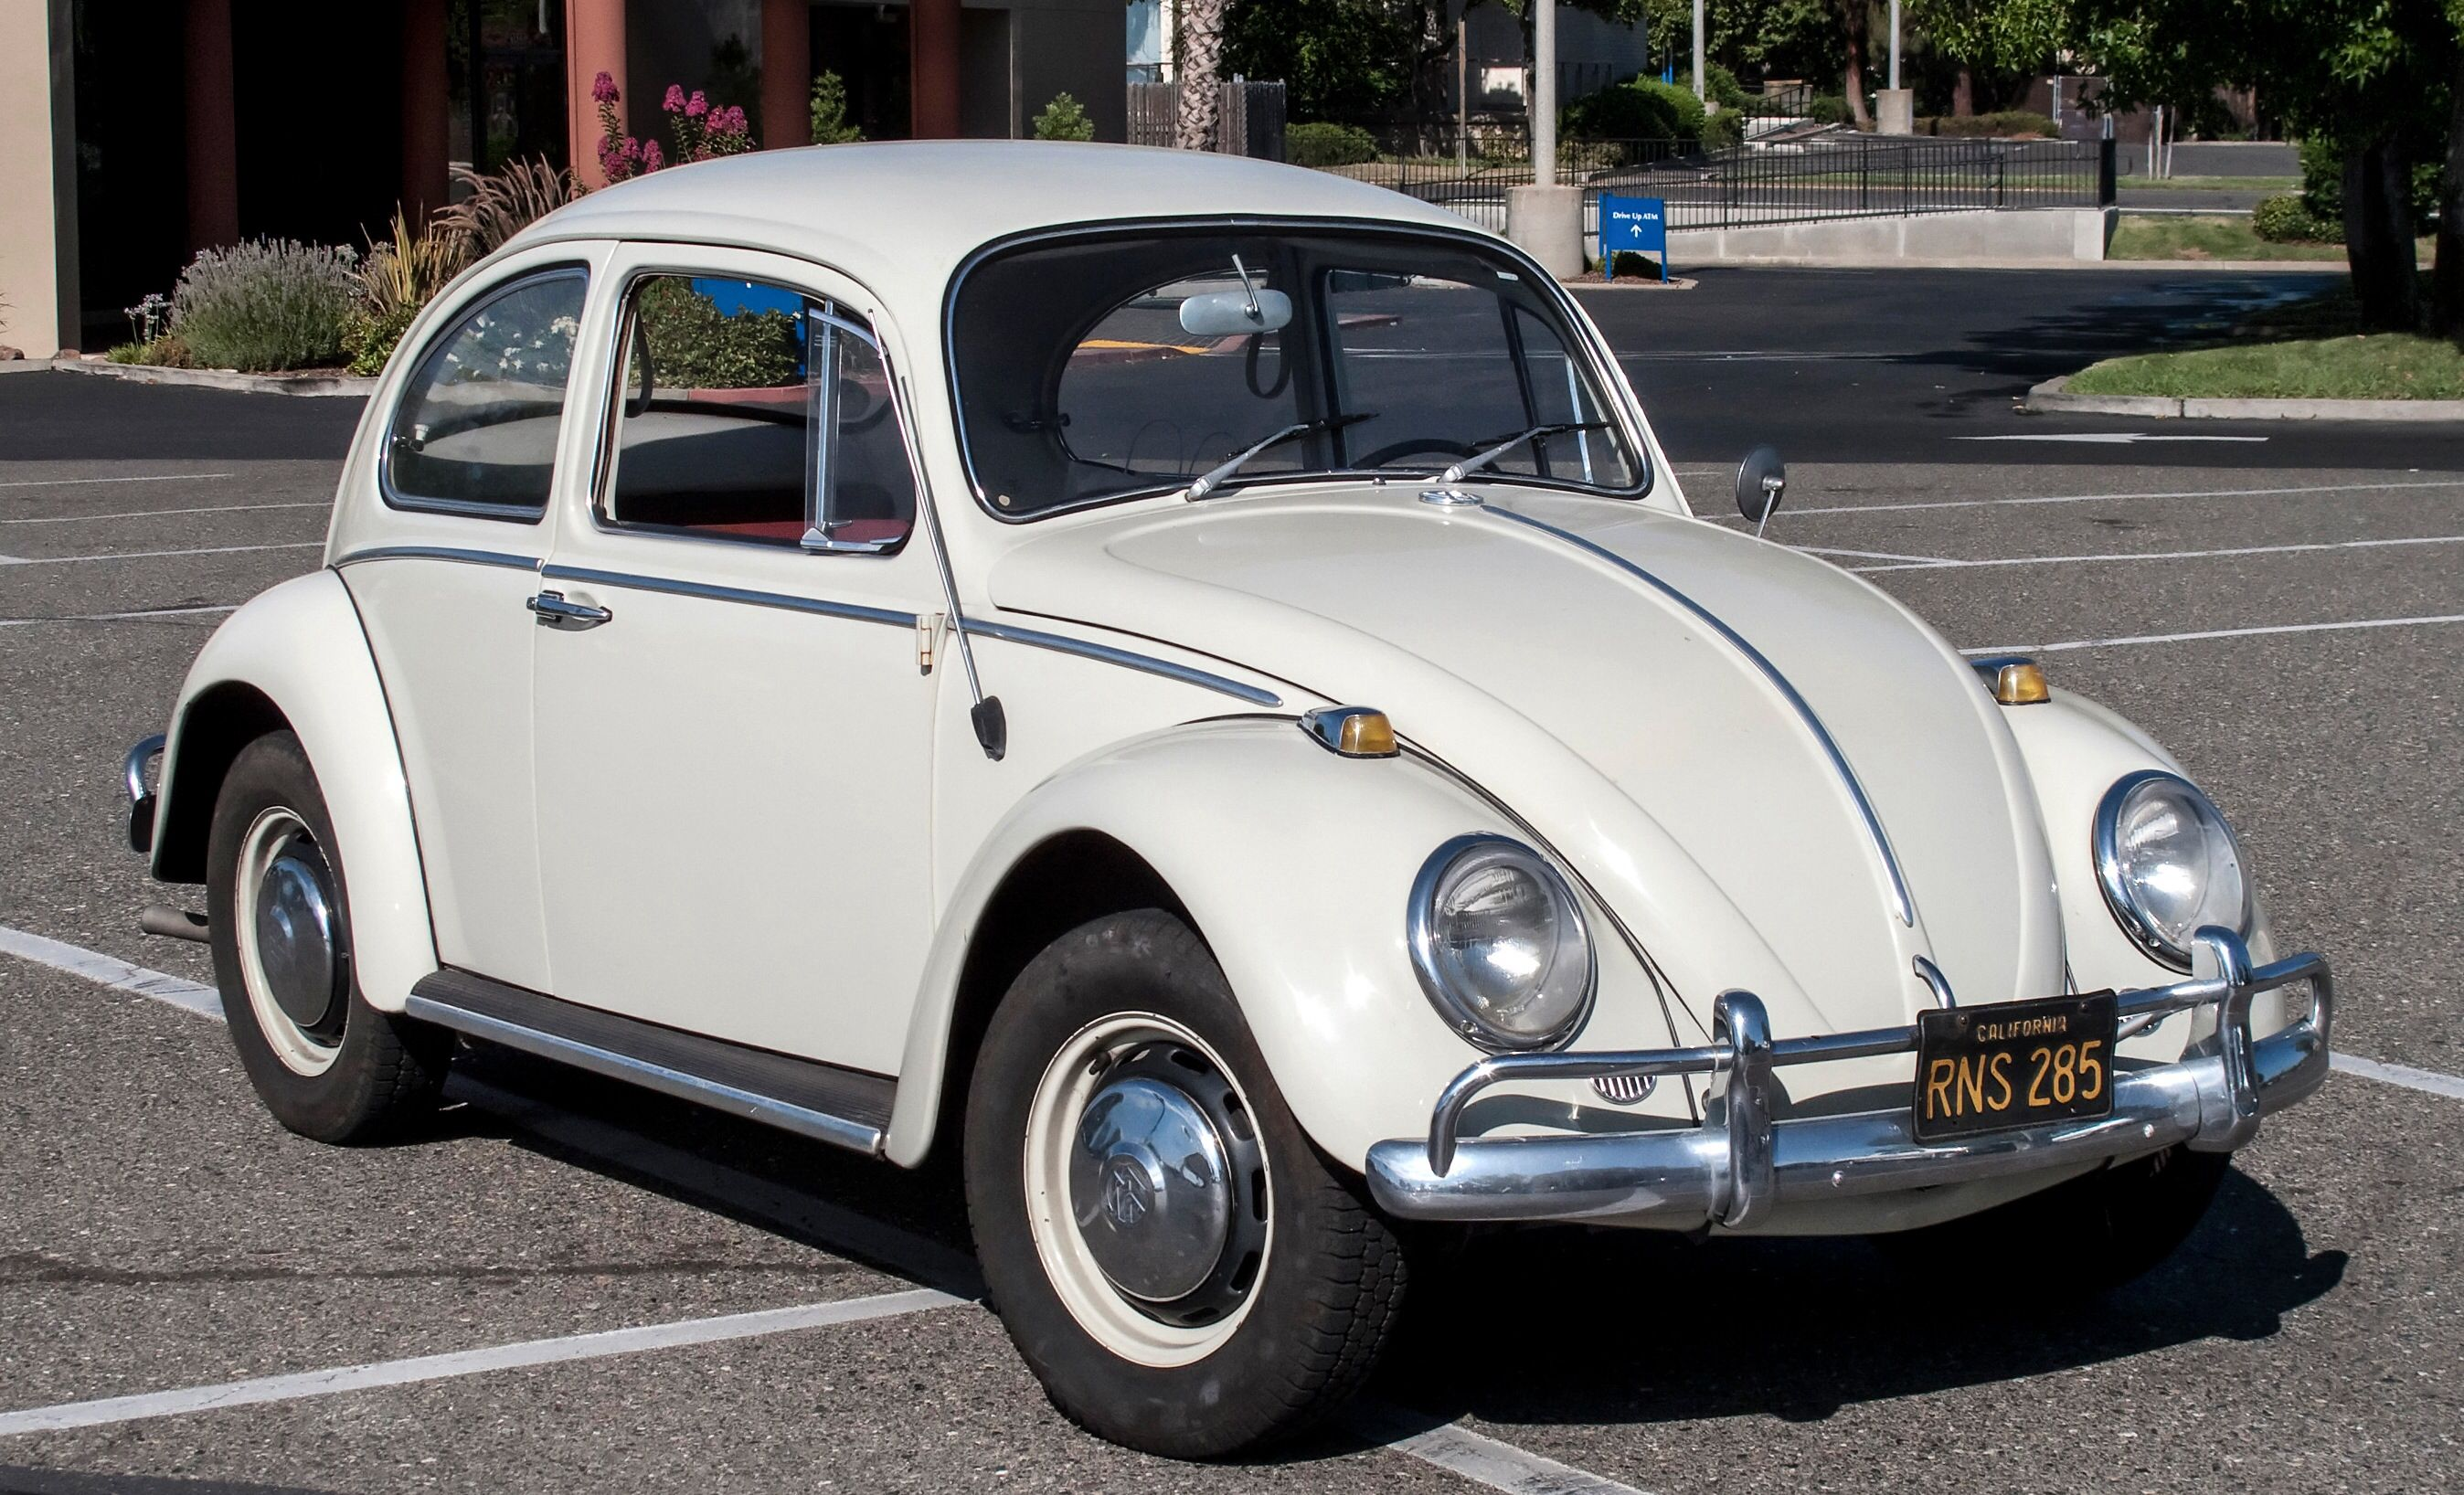 In The Early 70s My Older Brother Had A Volkswagen Beetle